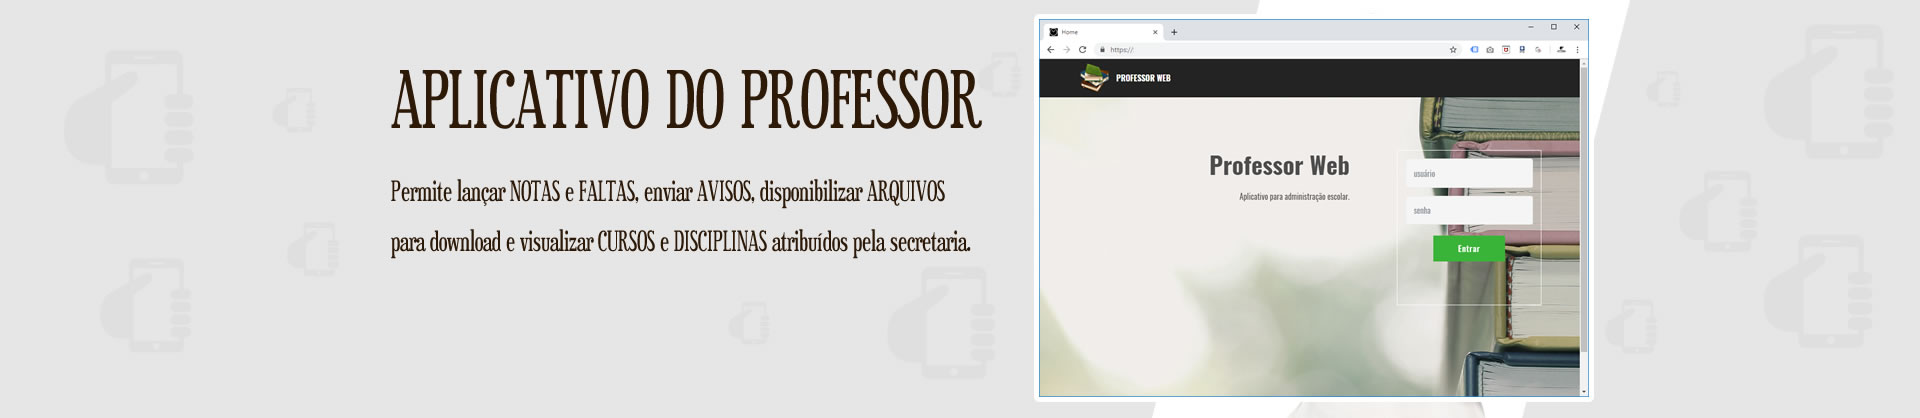 Aplicativo do Professor